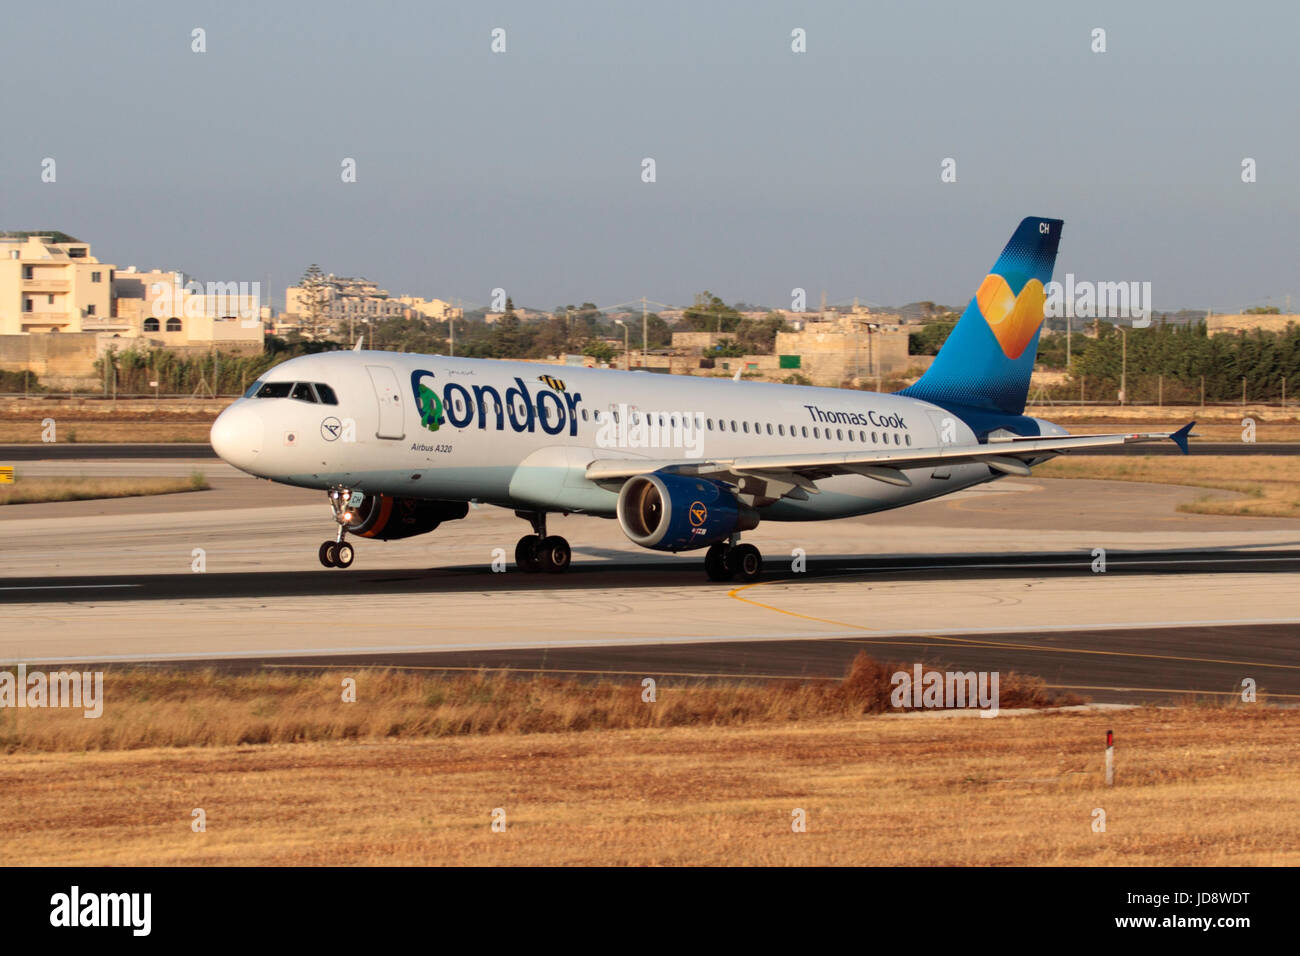 Commercial air travel. Condor Flugdienst Airbus A320 passenger jet plane taking off from Malta - Stock Image